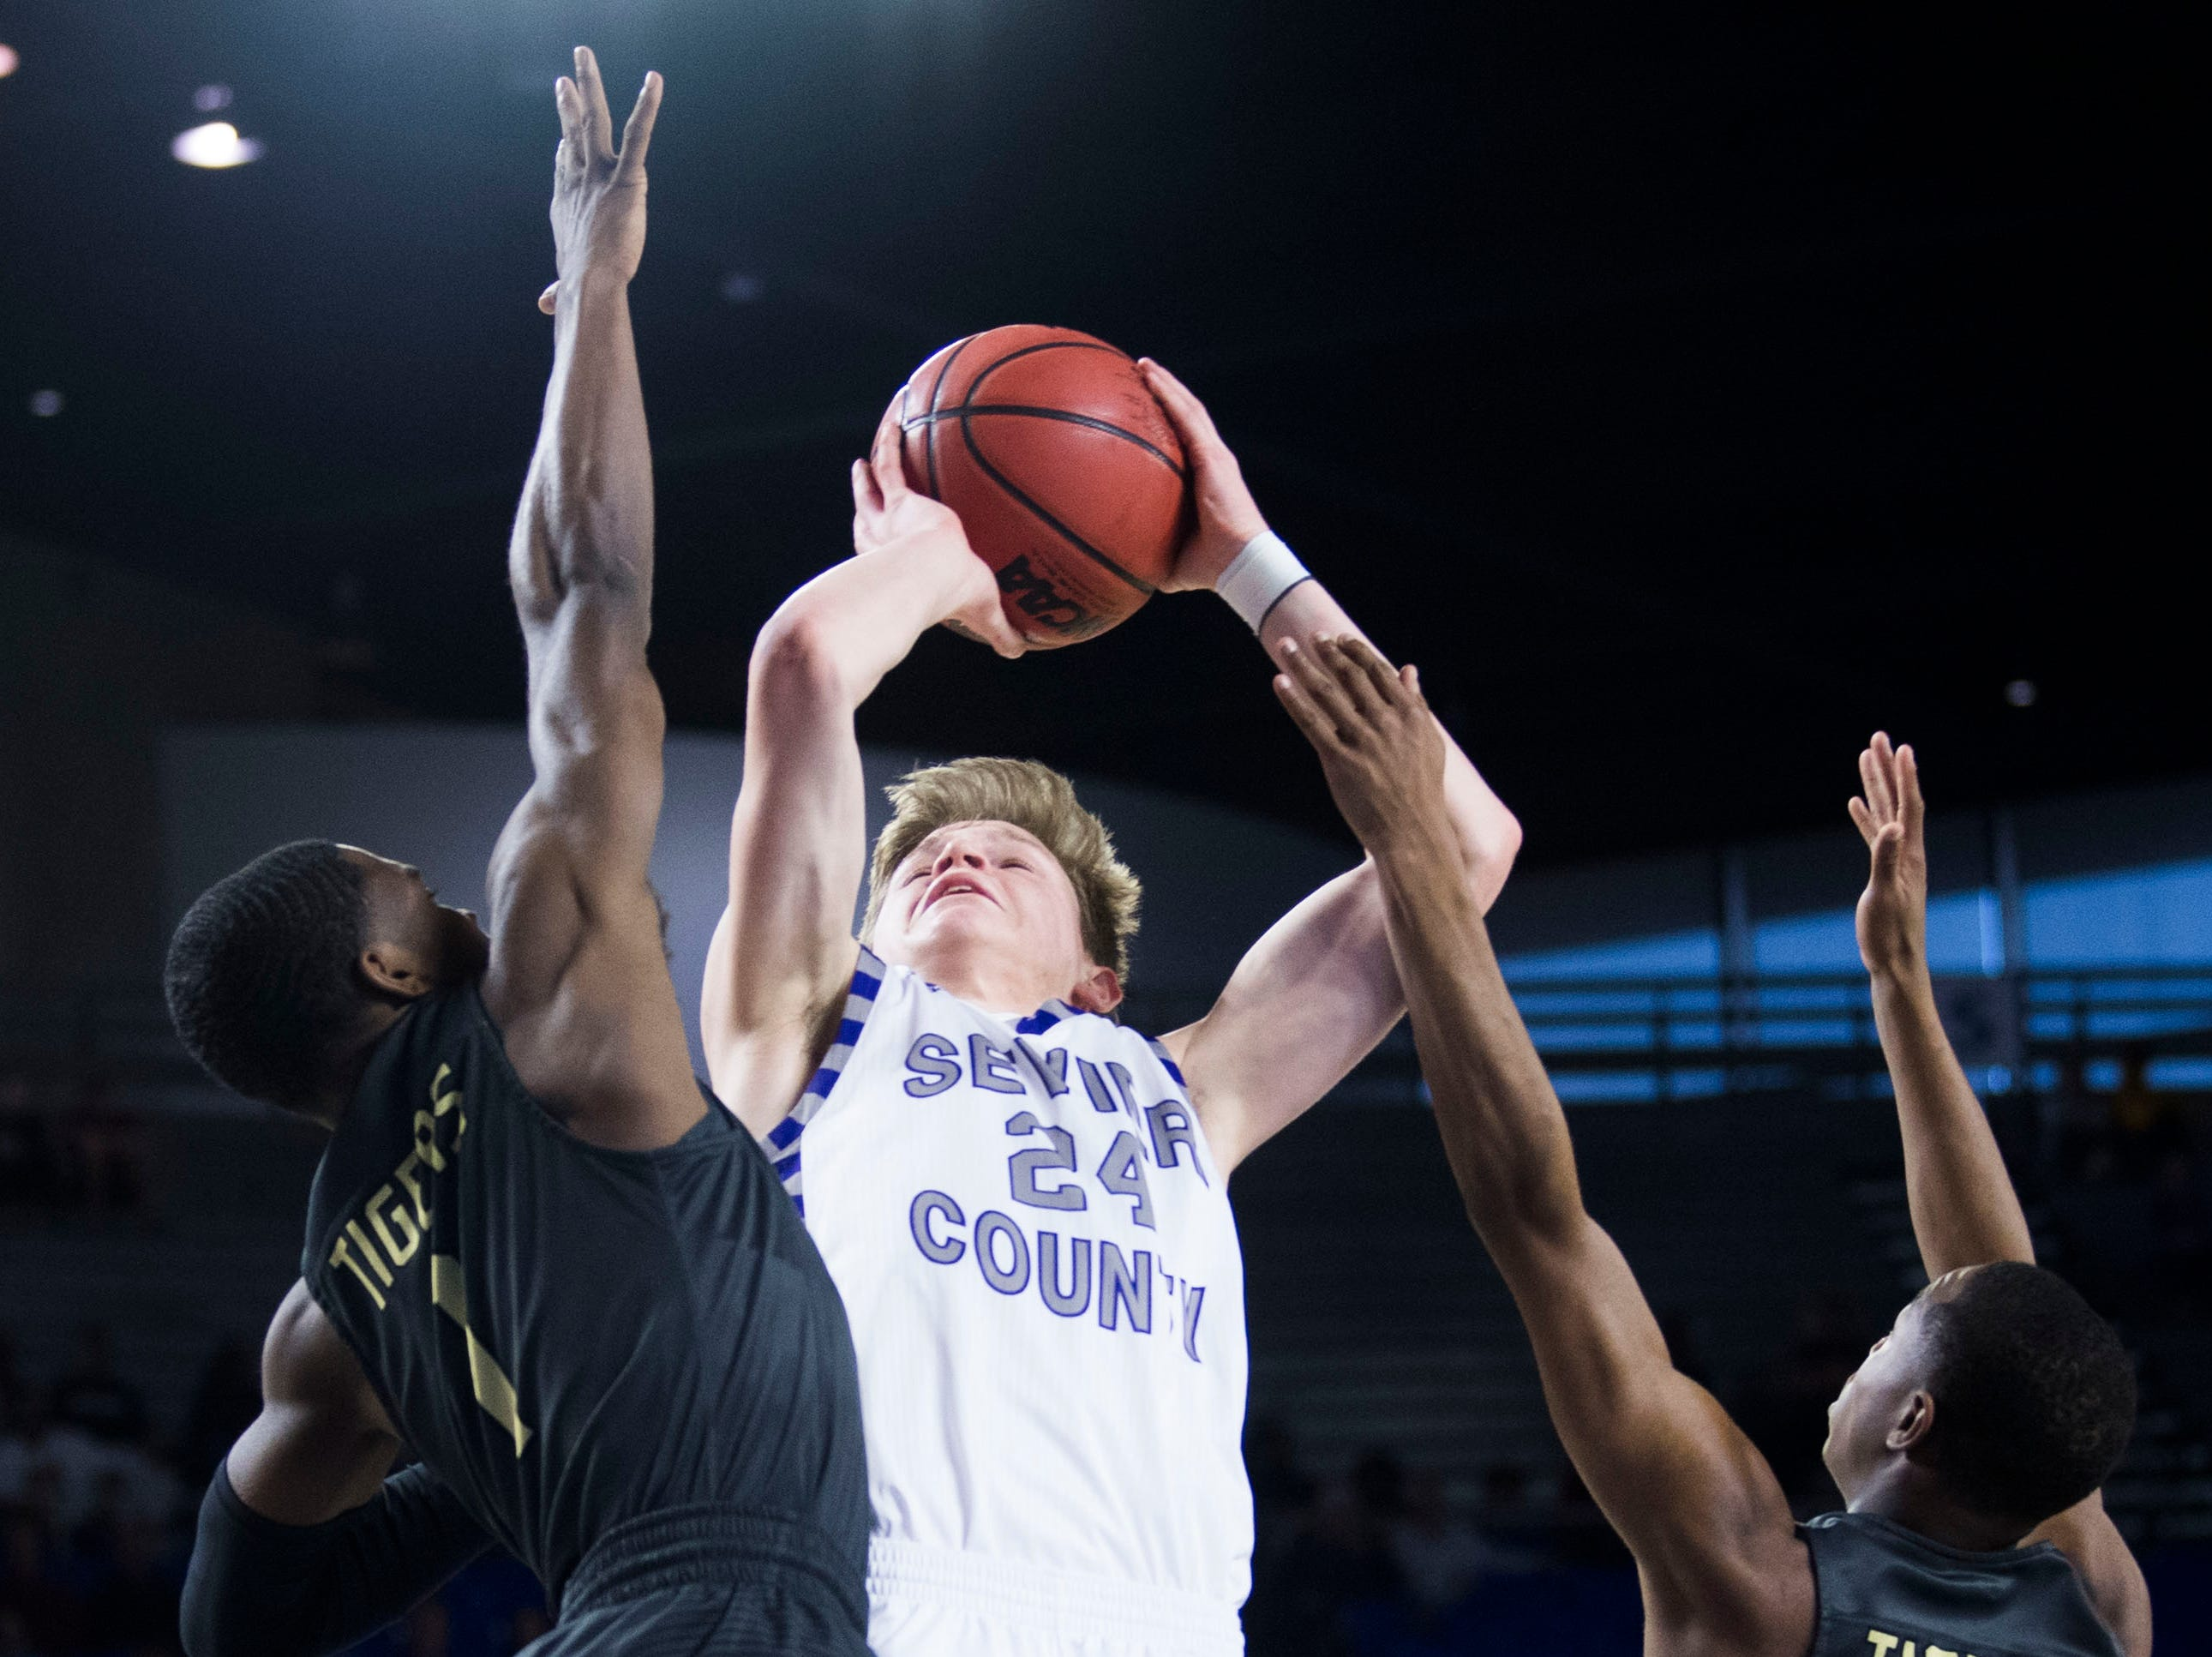 Sevier County's Wesley Maples (24) takes a shot during a TSSAA AAA state quarterfinal game between Sevier County and Whitehaven at the Murphy Center in Murfreesboro, Wednesday, March 13, 2019.